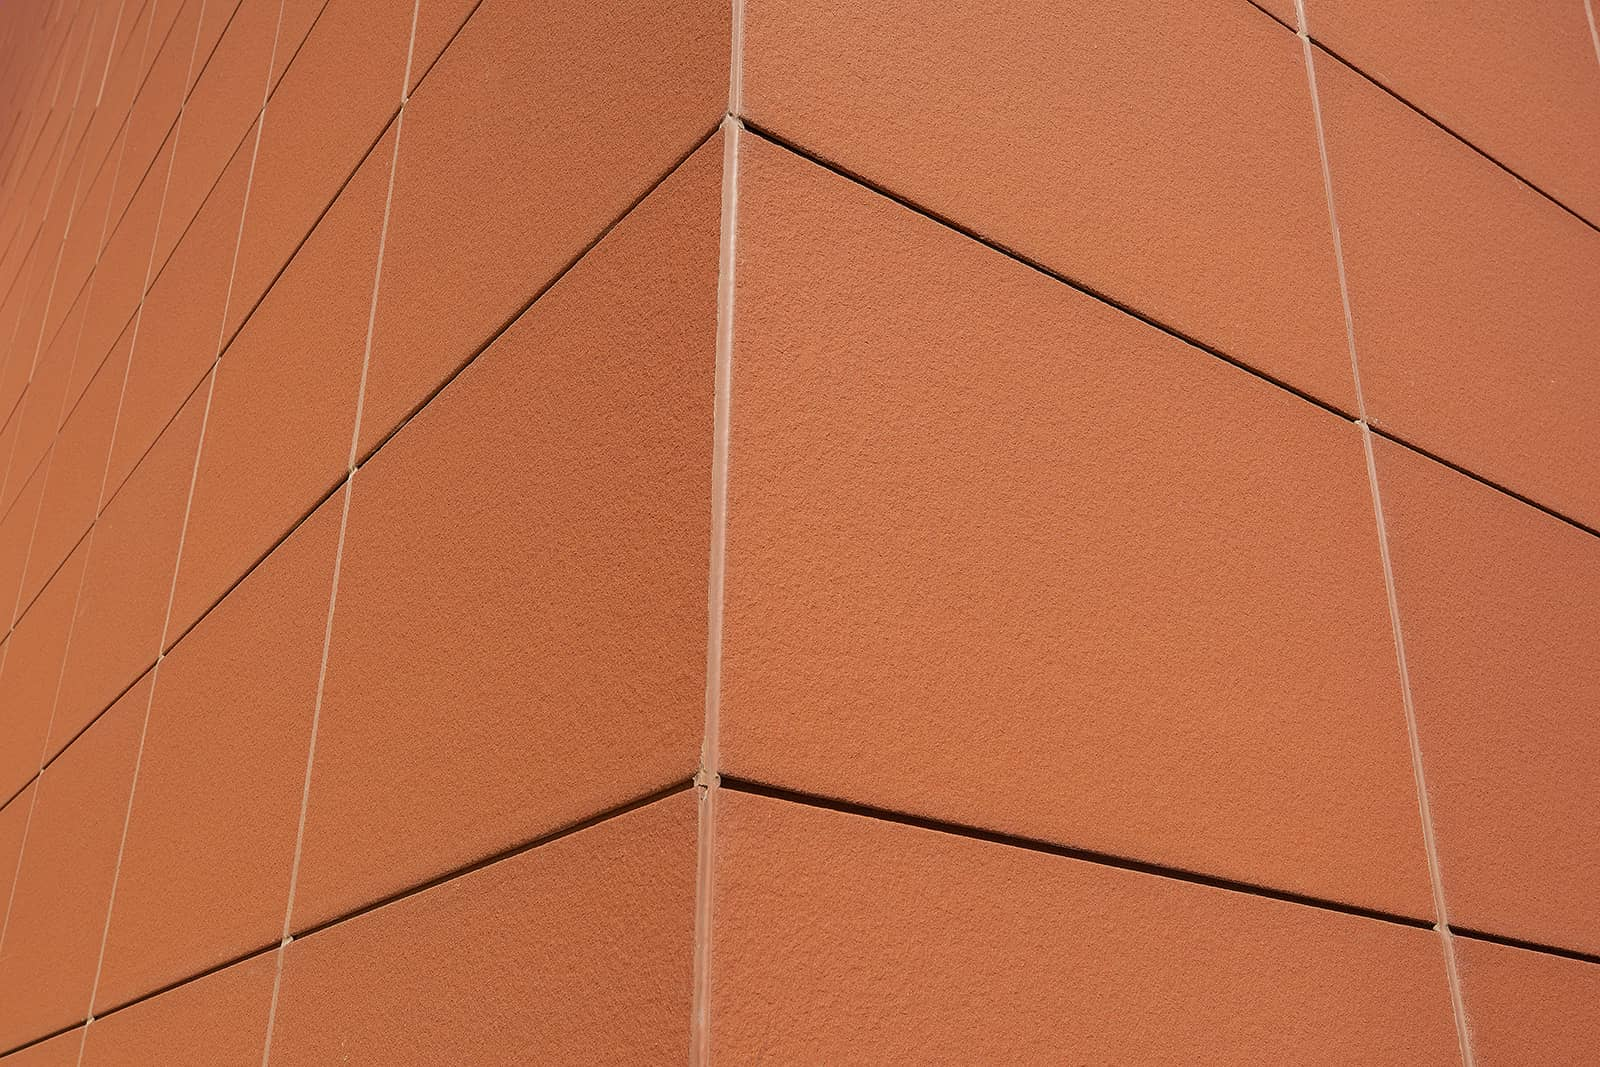 Terracotta Wall in the Exhibition Hall